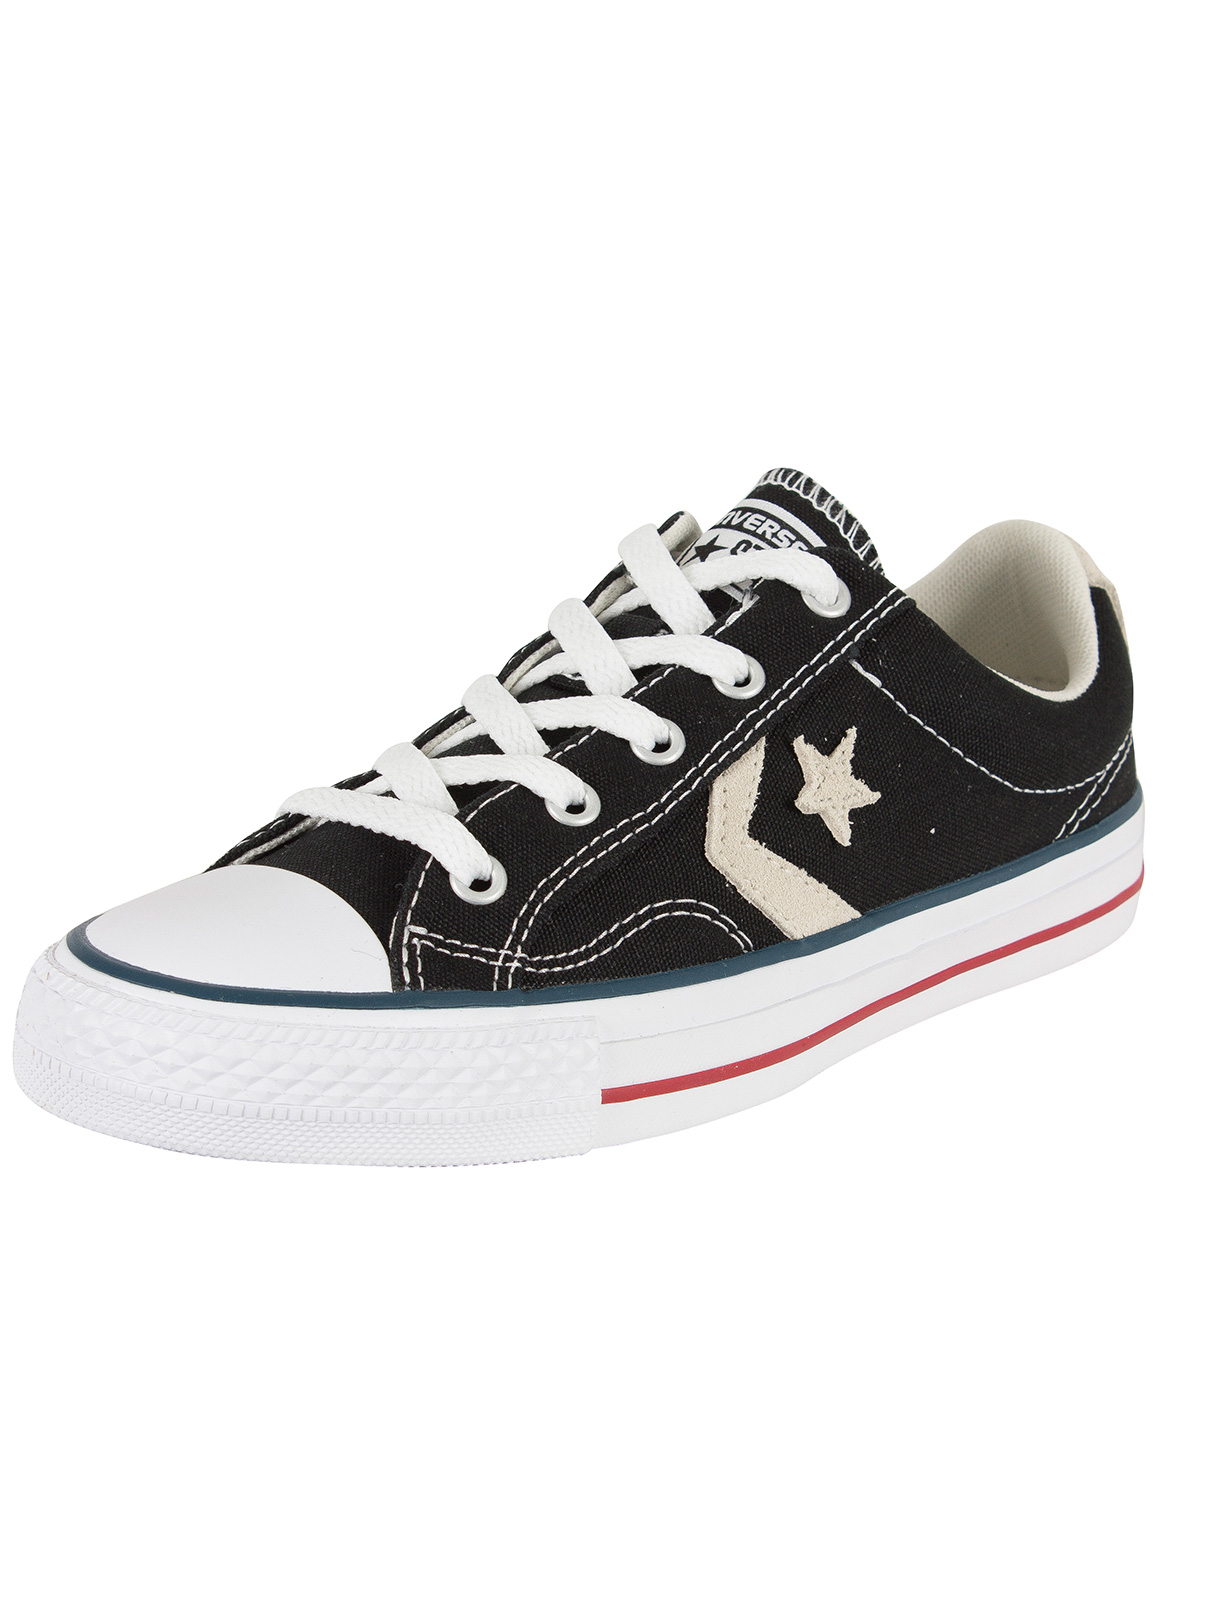 3e13dfa54332 Converse Black Milk Star Player OX Trainers